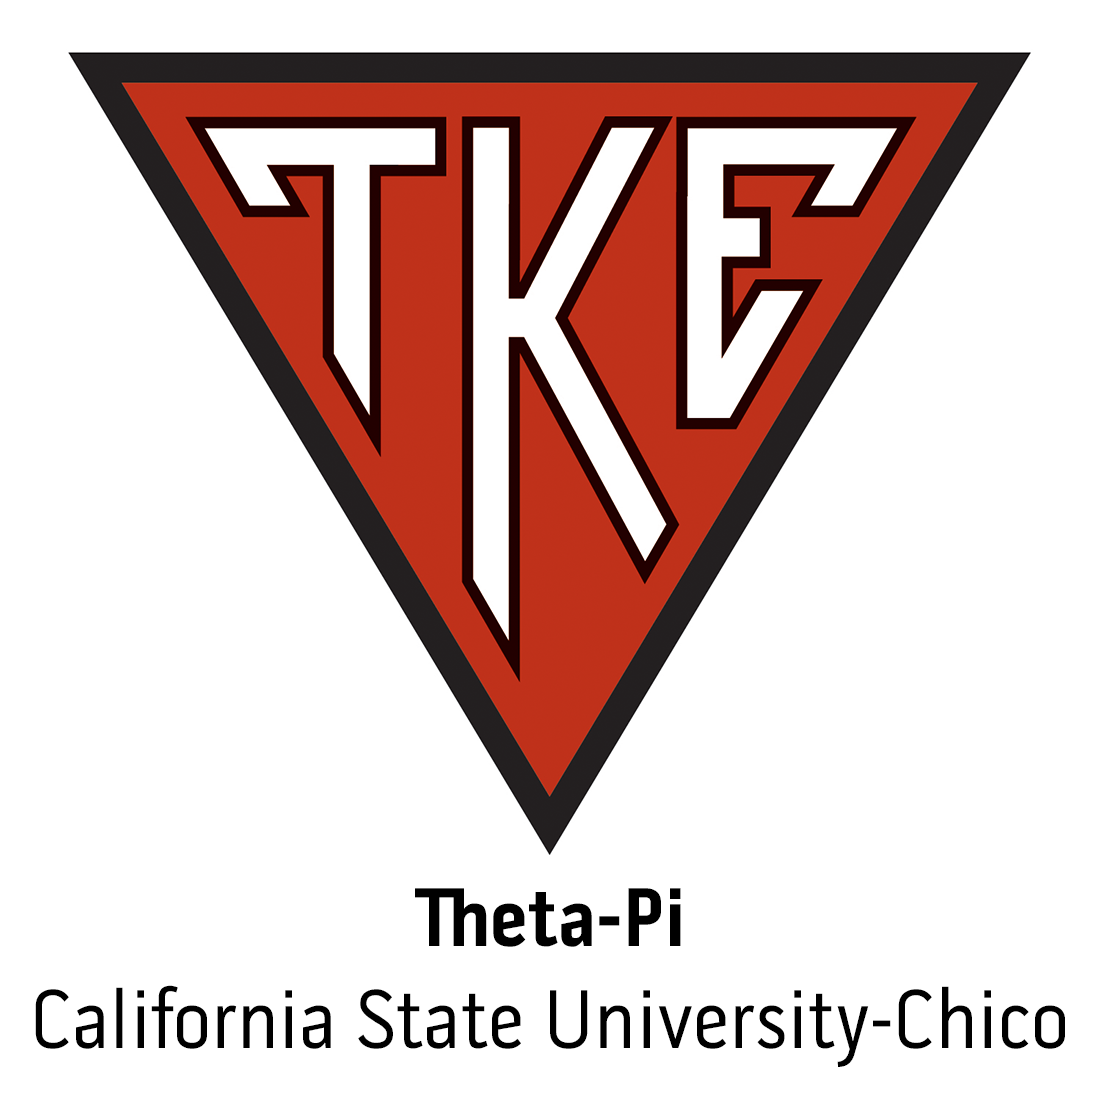 Theta-Pi Colony at California State University, Chico